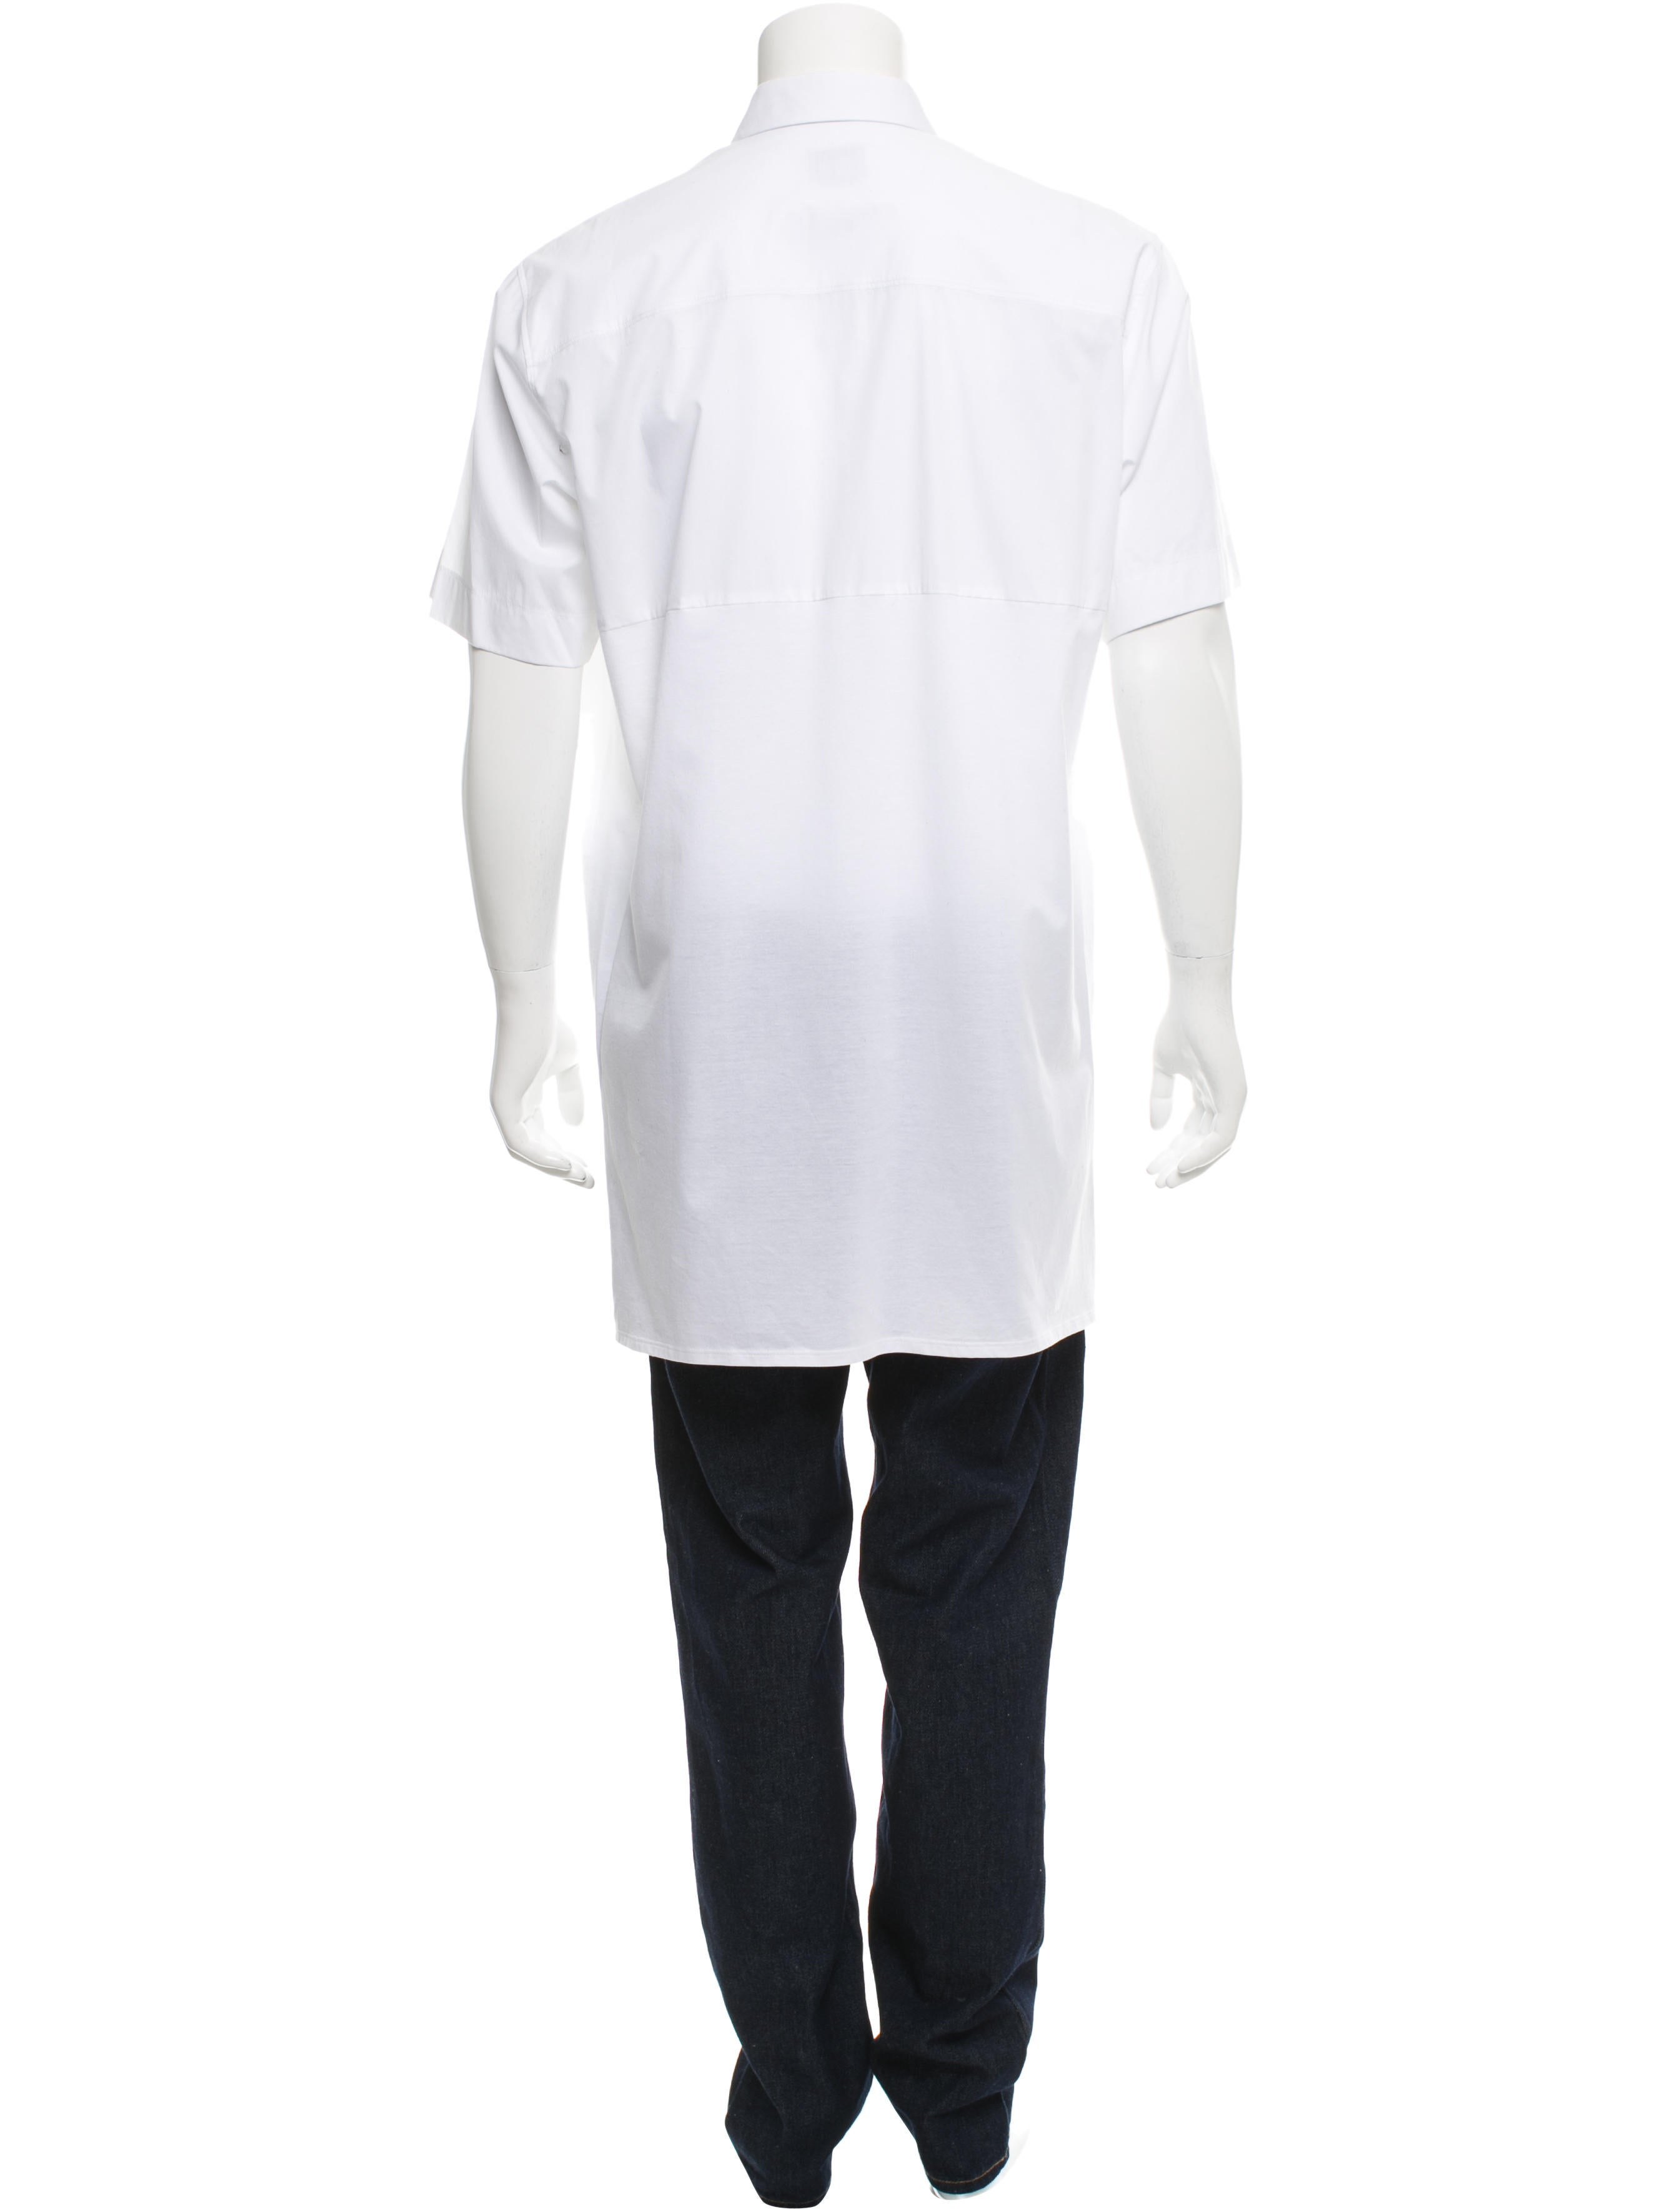 westwood muslim single men There are a number of garments marketed to men which fall under the category of skirt or dress these go by a variety of names and form part of the traditional dress for men from various cultures.